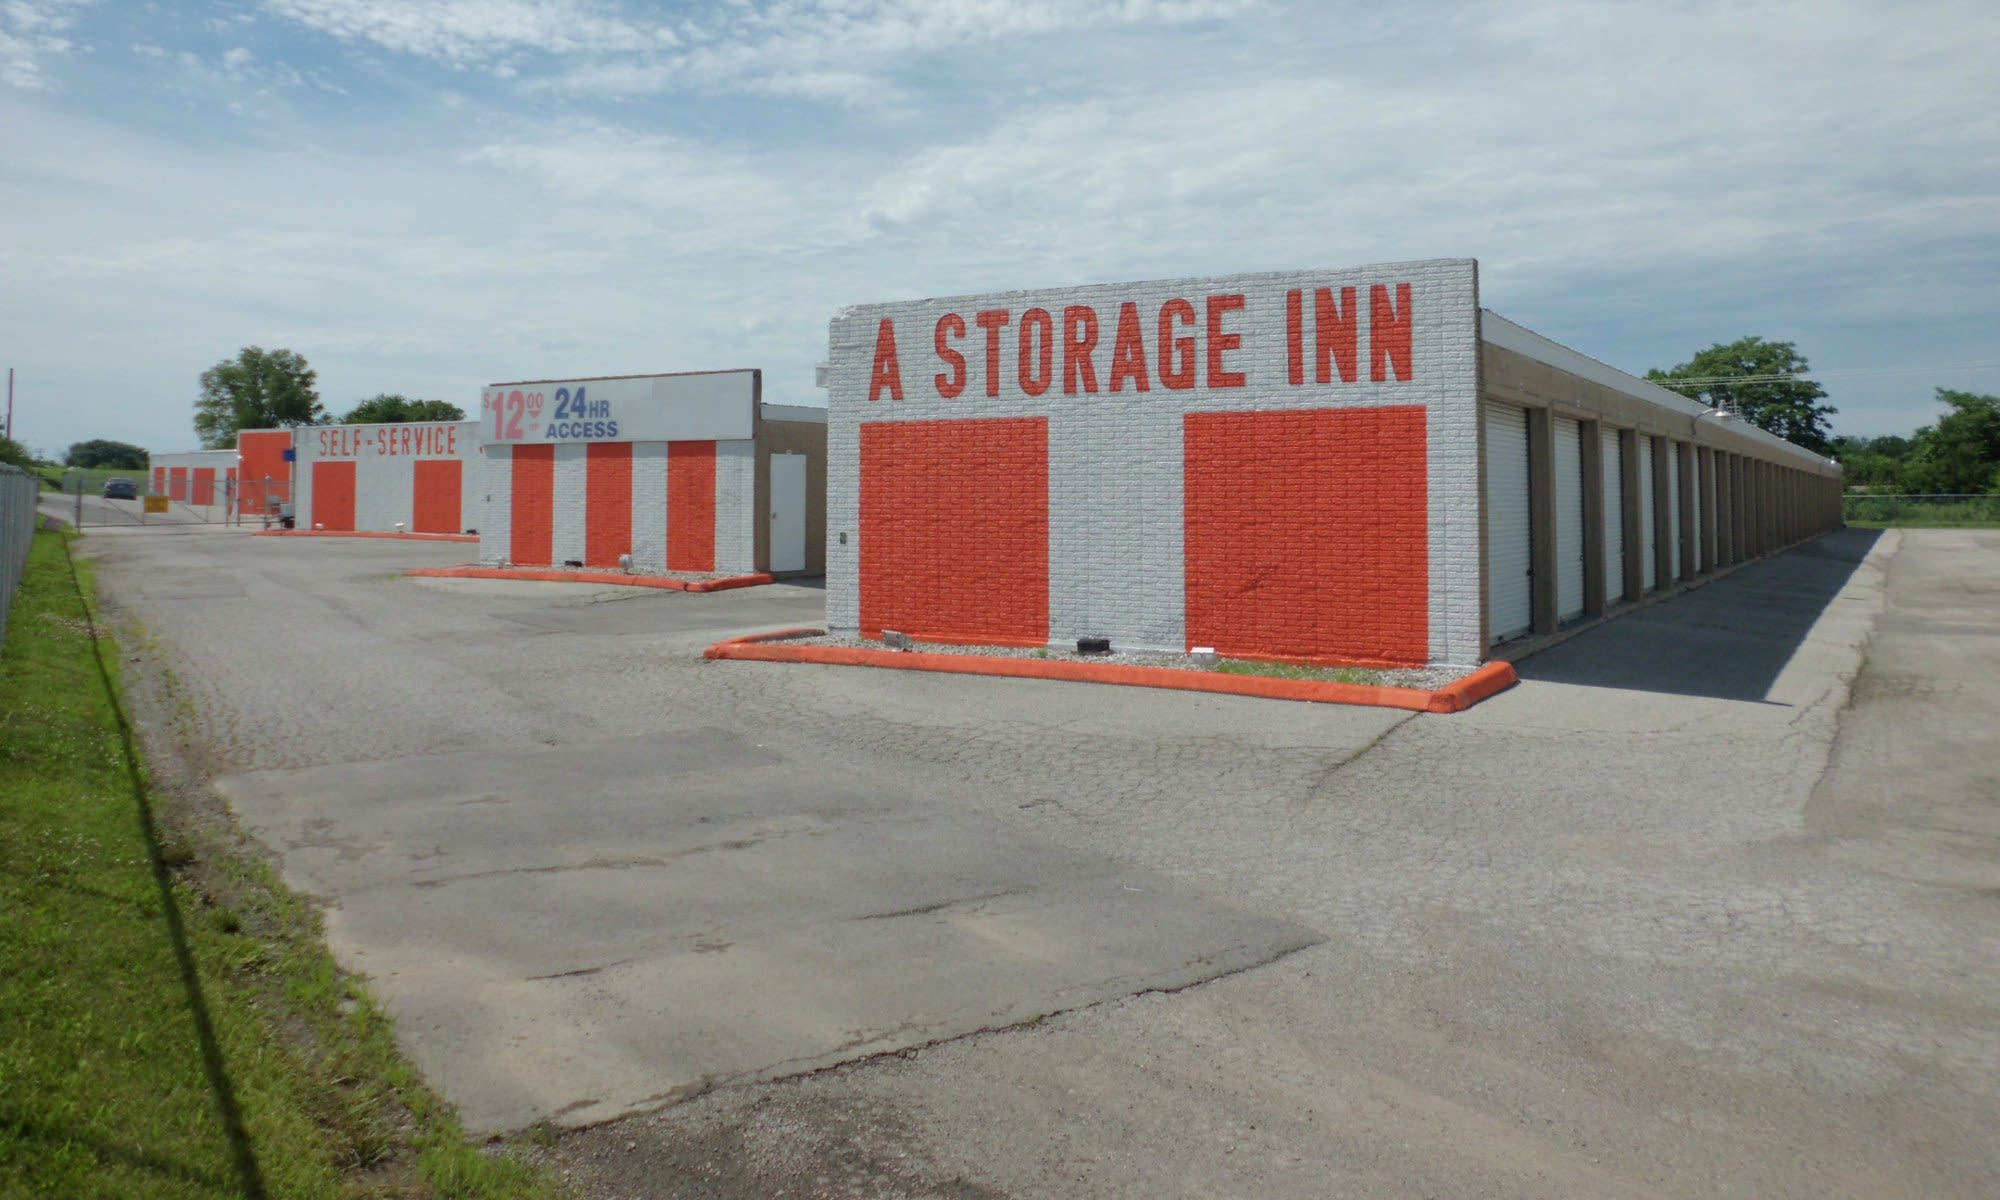 Storage units available at A Storage Inn - O'Fallon in O'Fallon, IL